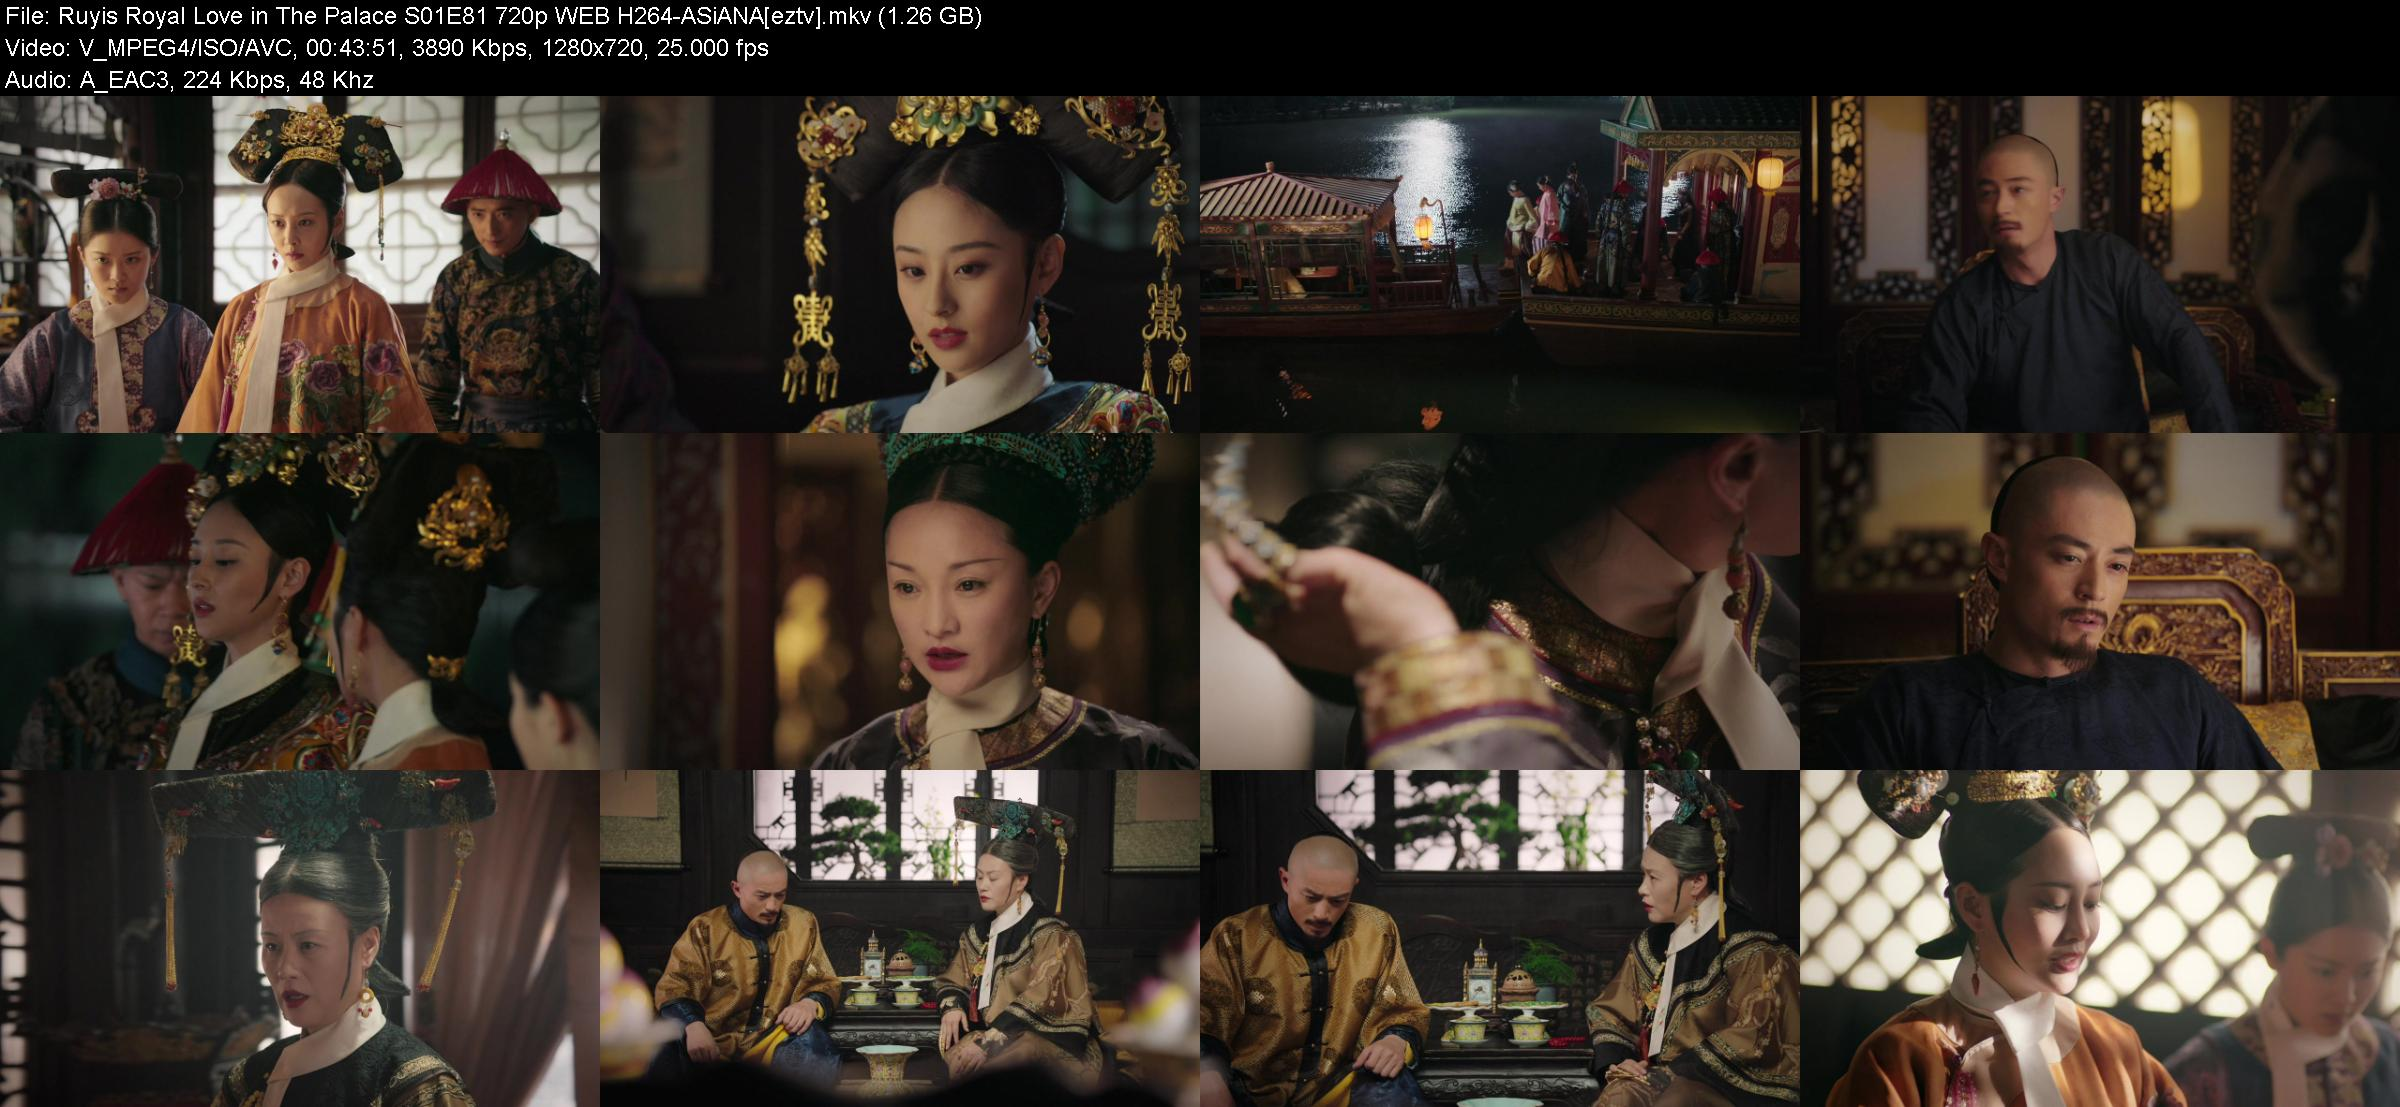 Ruyis Royal Love in The Palace S01E81 720p WEB H264-ASiANA